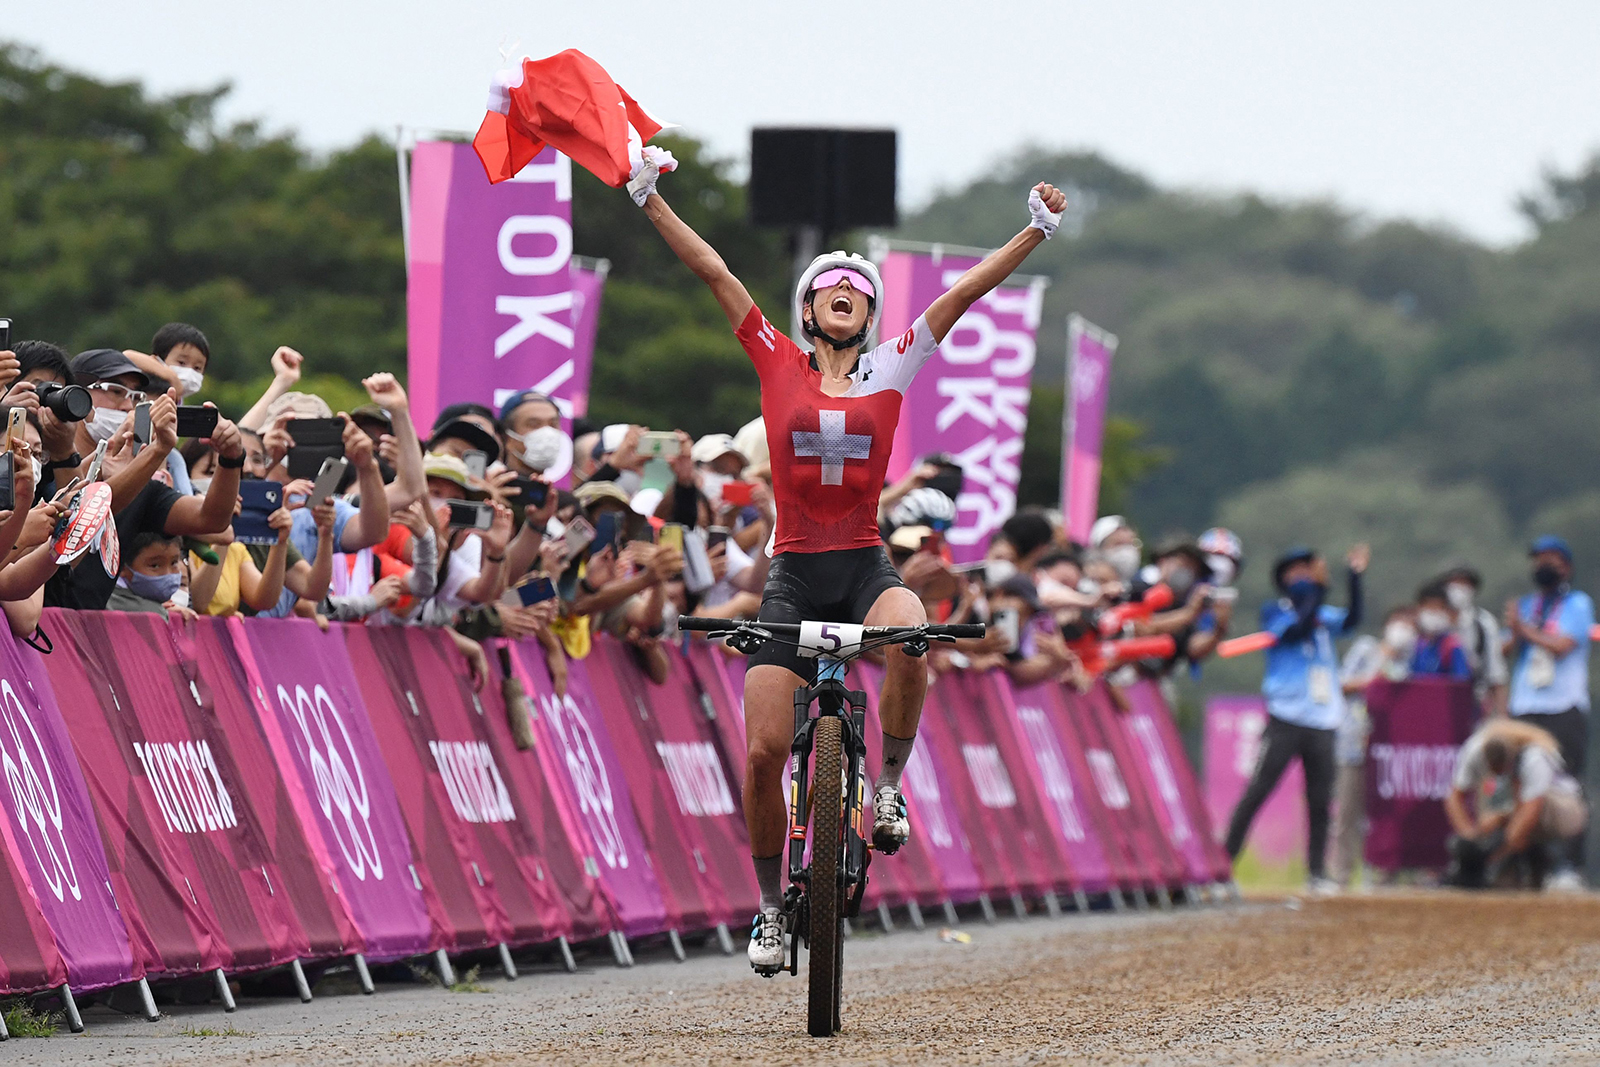 Jolanda Neff approaches the finish line to win the gold medal in the cycling mountain bike women's cross-country race on July 27, 2021.